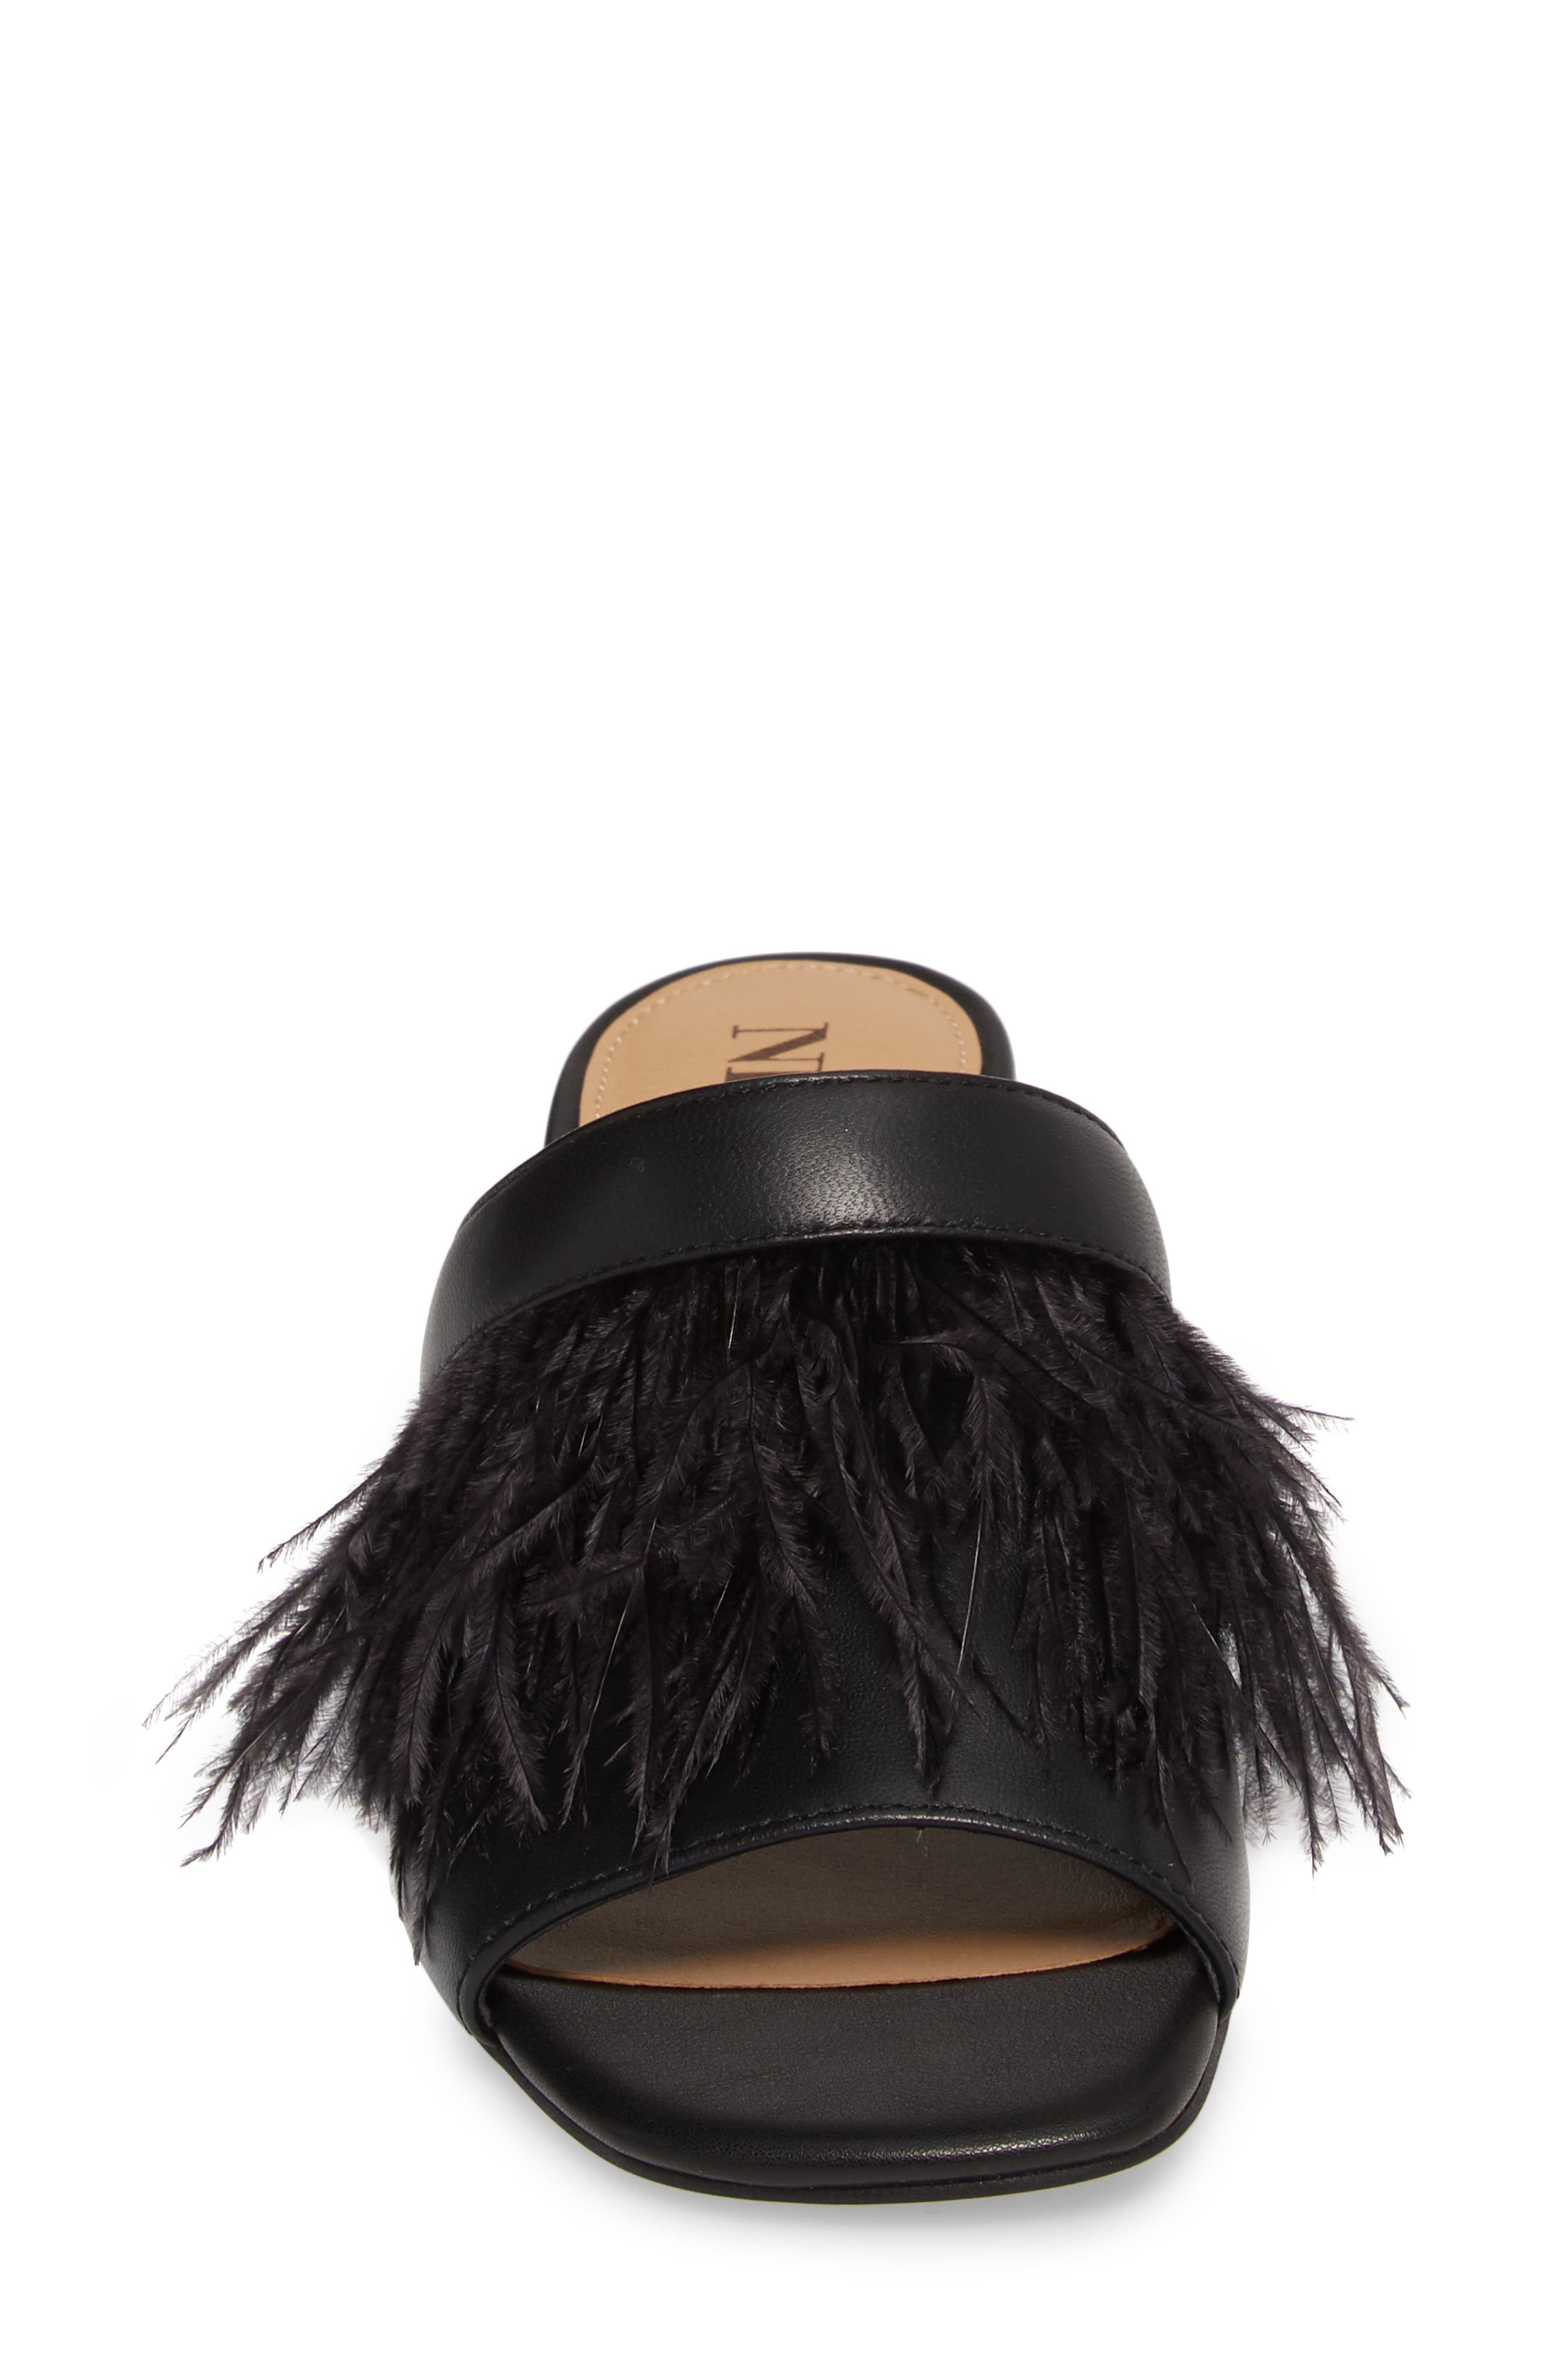 NIC + ZOE Feather Mule,                             Alternate thumbnail 4, color,                             BLACK LEATHER